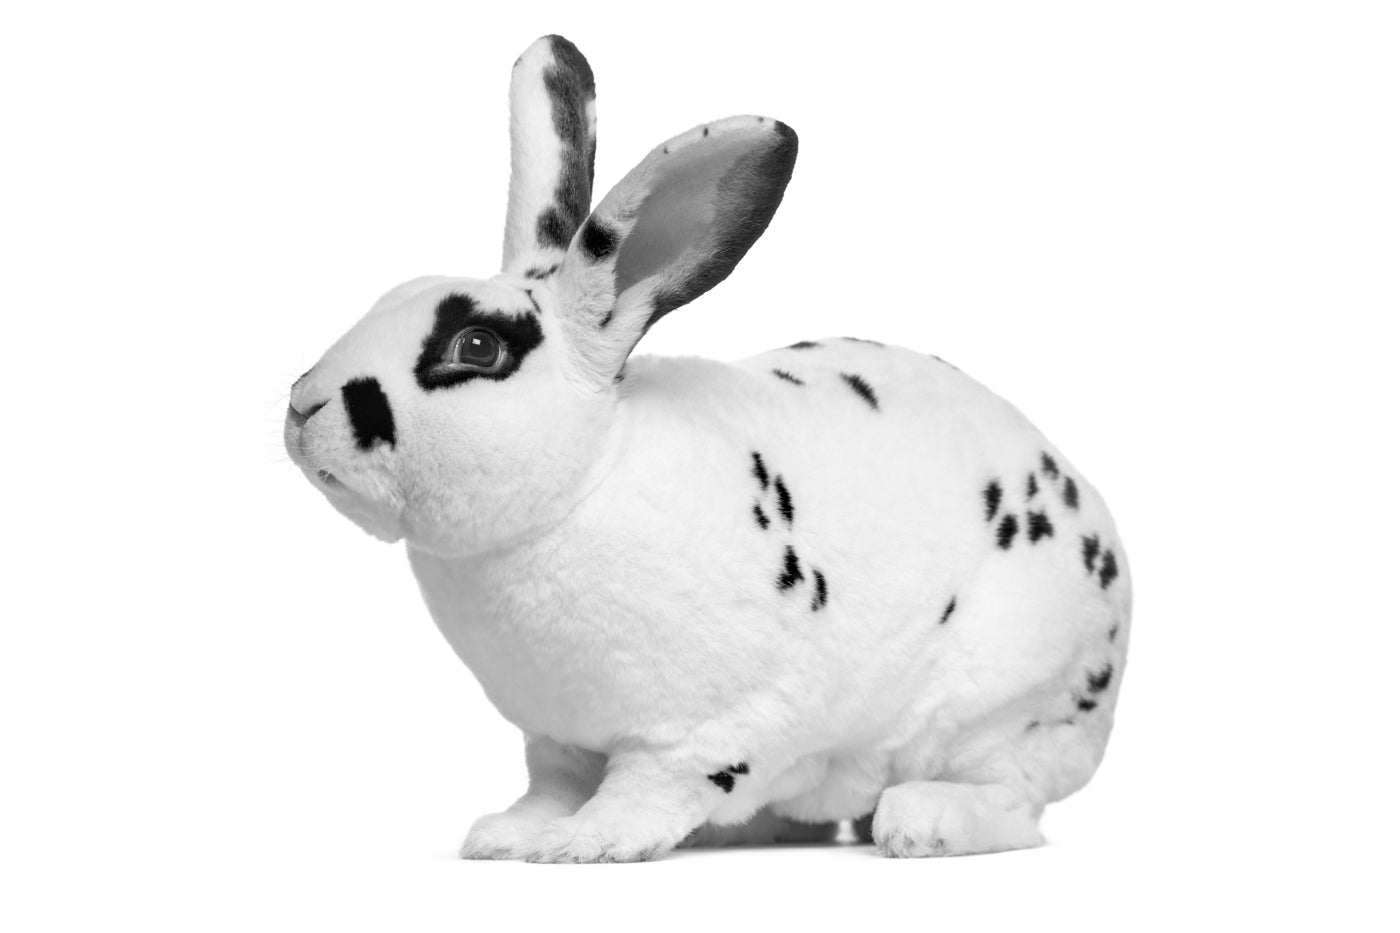 Bad Rabbit Highlights Employees' Role in Cybersecurity Attacks